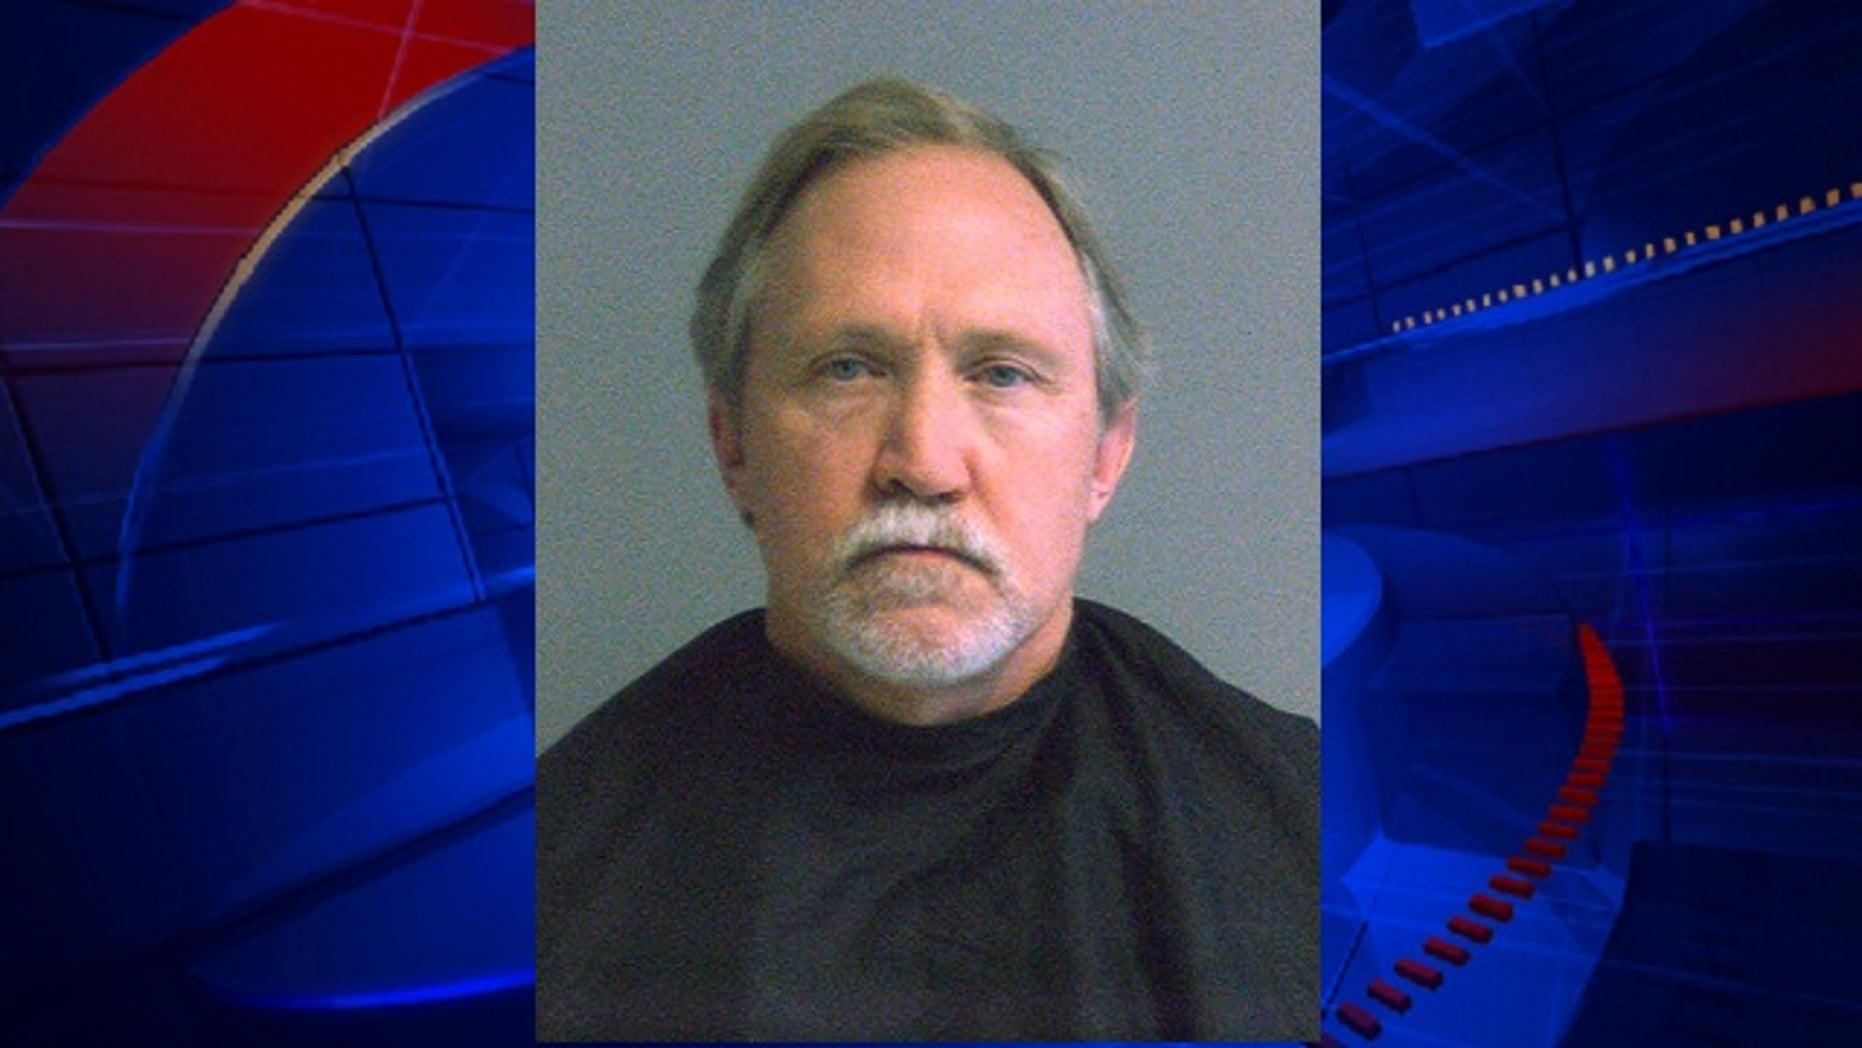 This photo, obtained by Fox affiliate WAGA-TV, shows Douglasville elementary school principal John McGill.